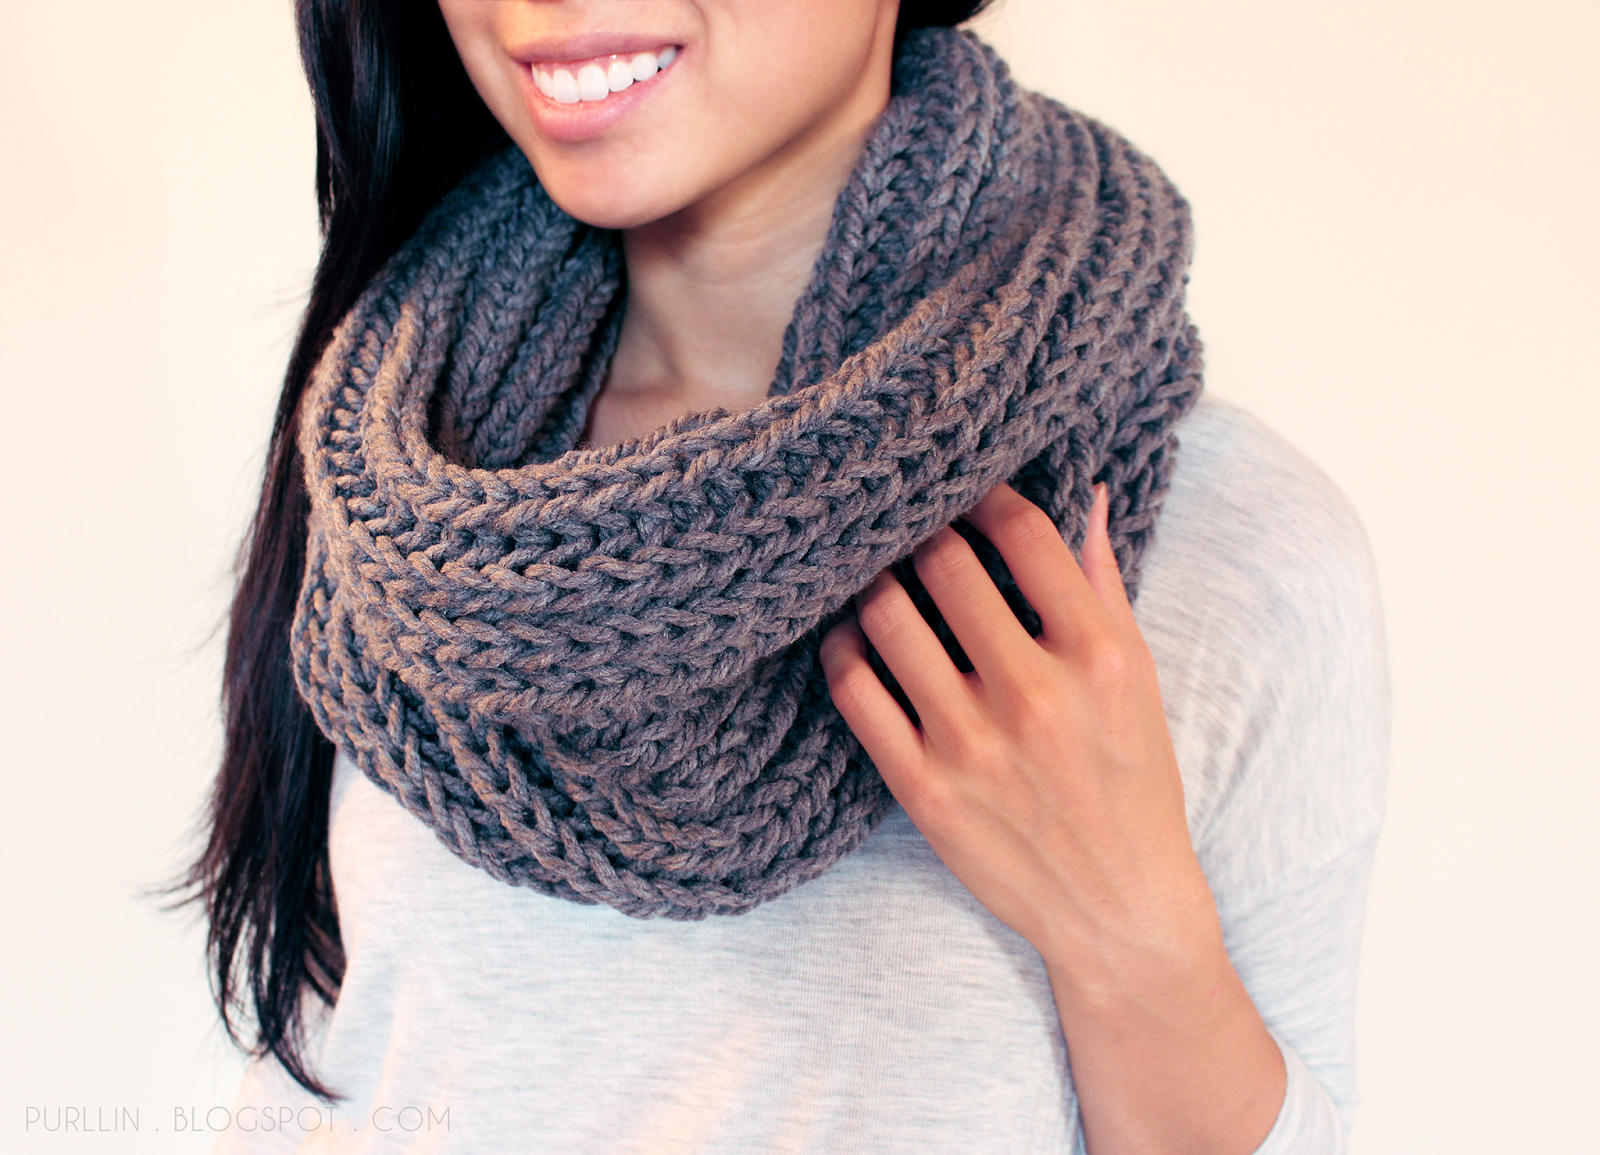 Infinity Scarf Knitting Pattern : Purllin: Textured November Infinity Scarf Free Pattern